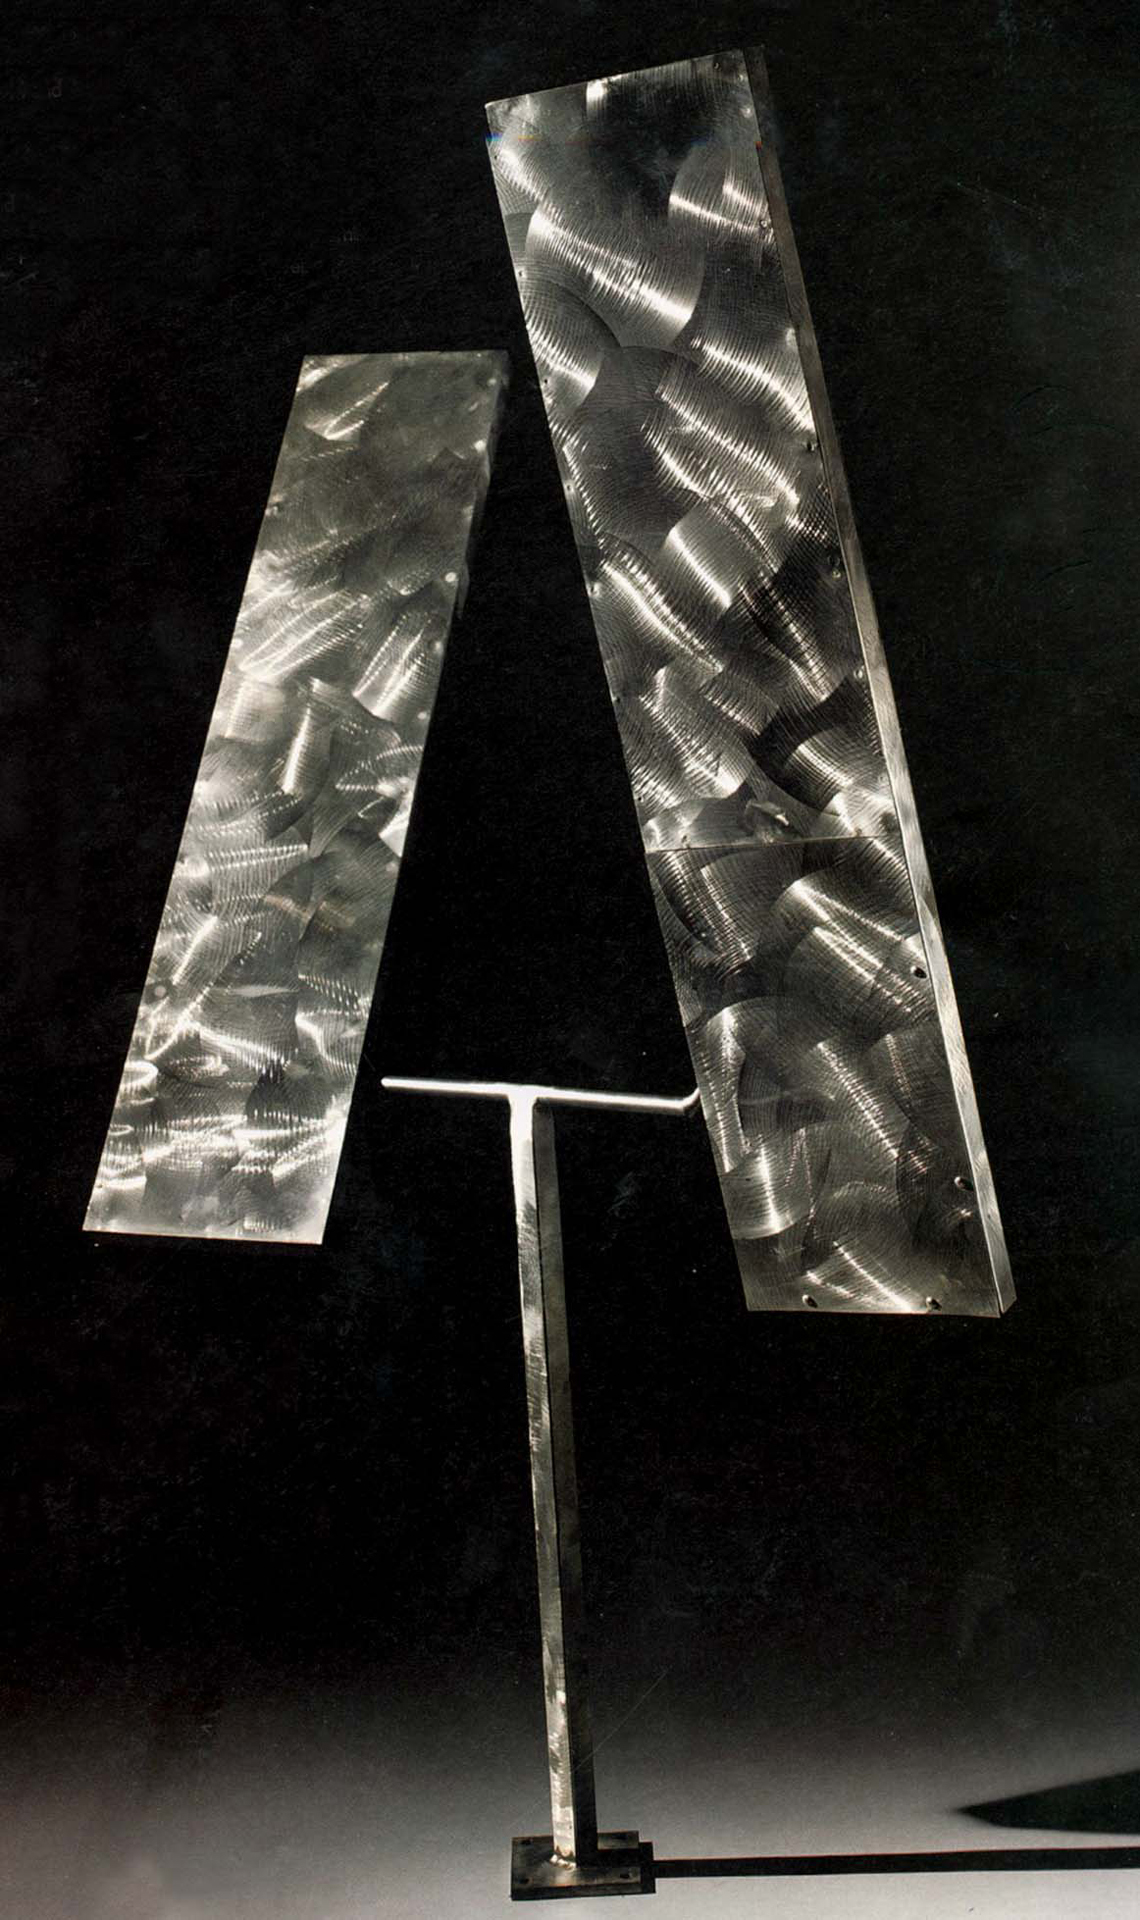 George Rickey, Two Rectangles biased up, 1974, Edelstahl, 137,2 x 77,5 x 91,4 cm